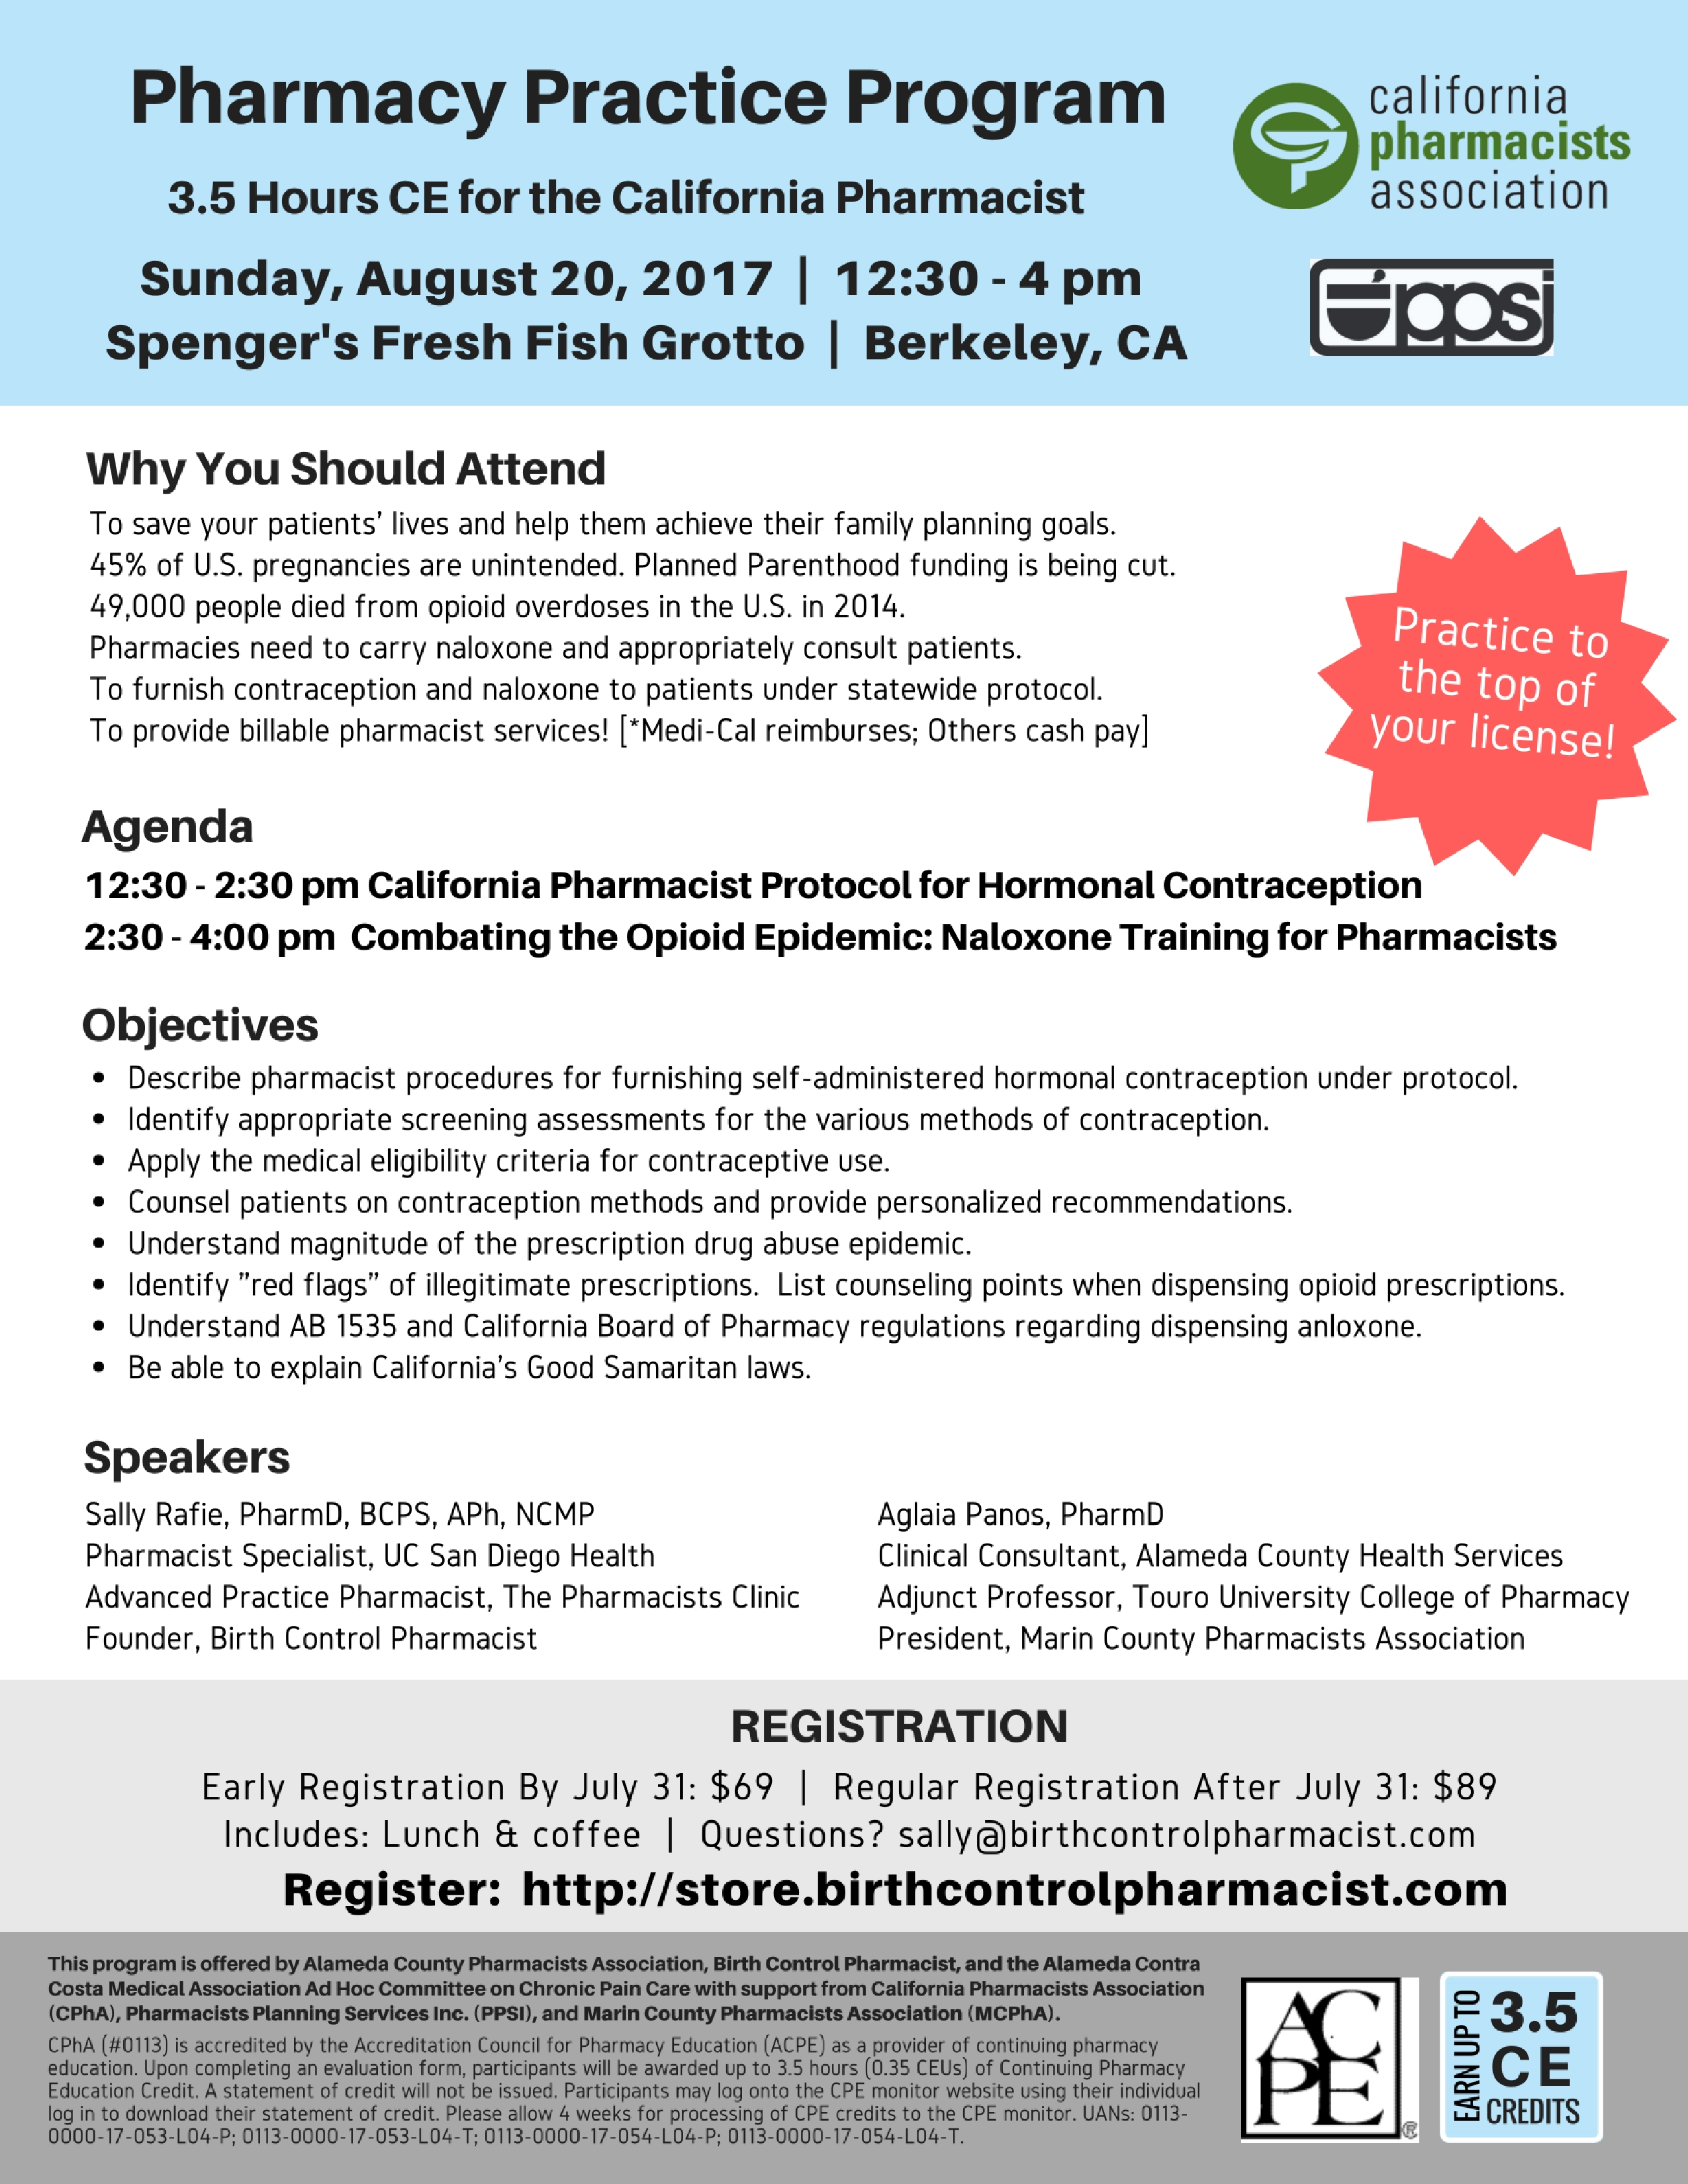 Pharmacy Practice CE Program for the CA Pharmacist - August 20 Berkeley